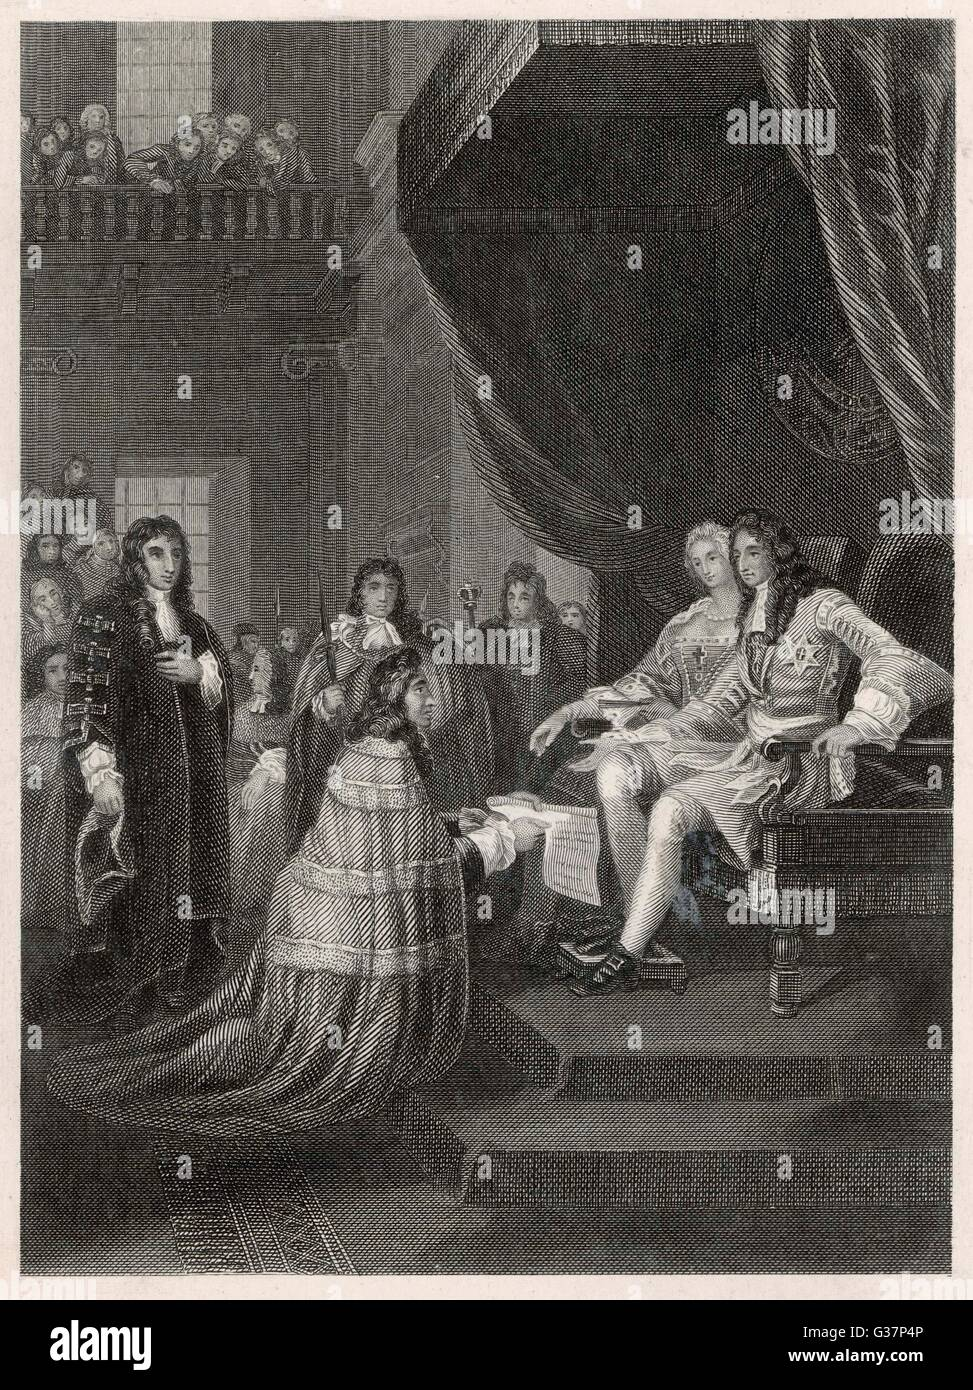 William and Mary accept the Bill of Rights. Date: 1689